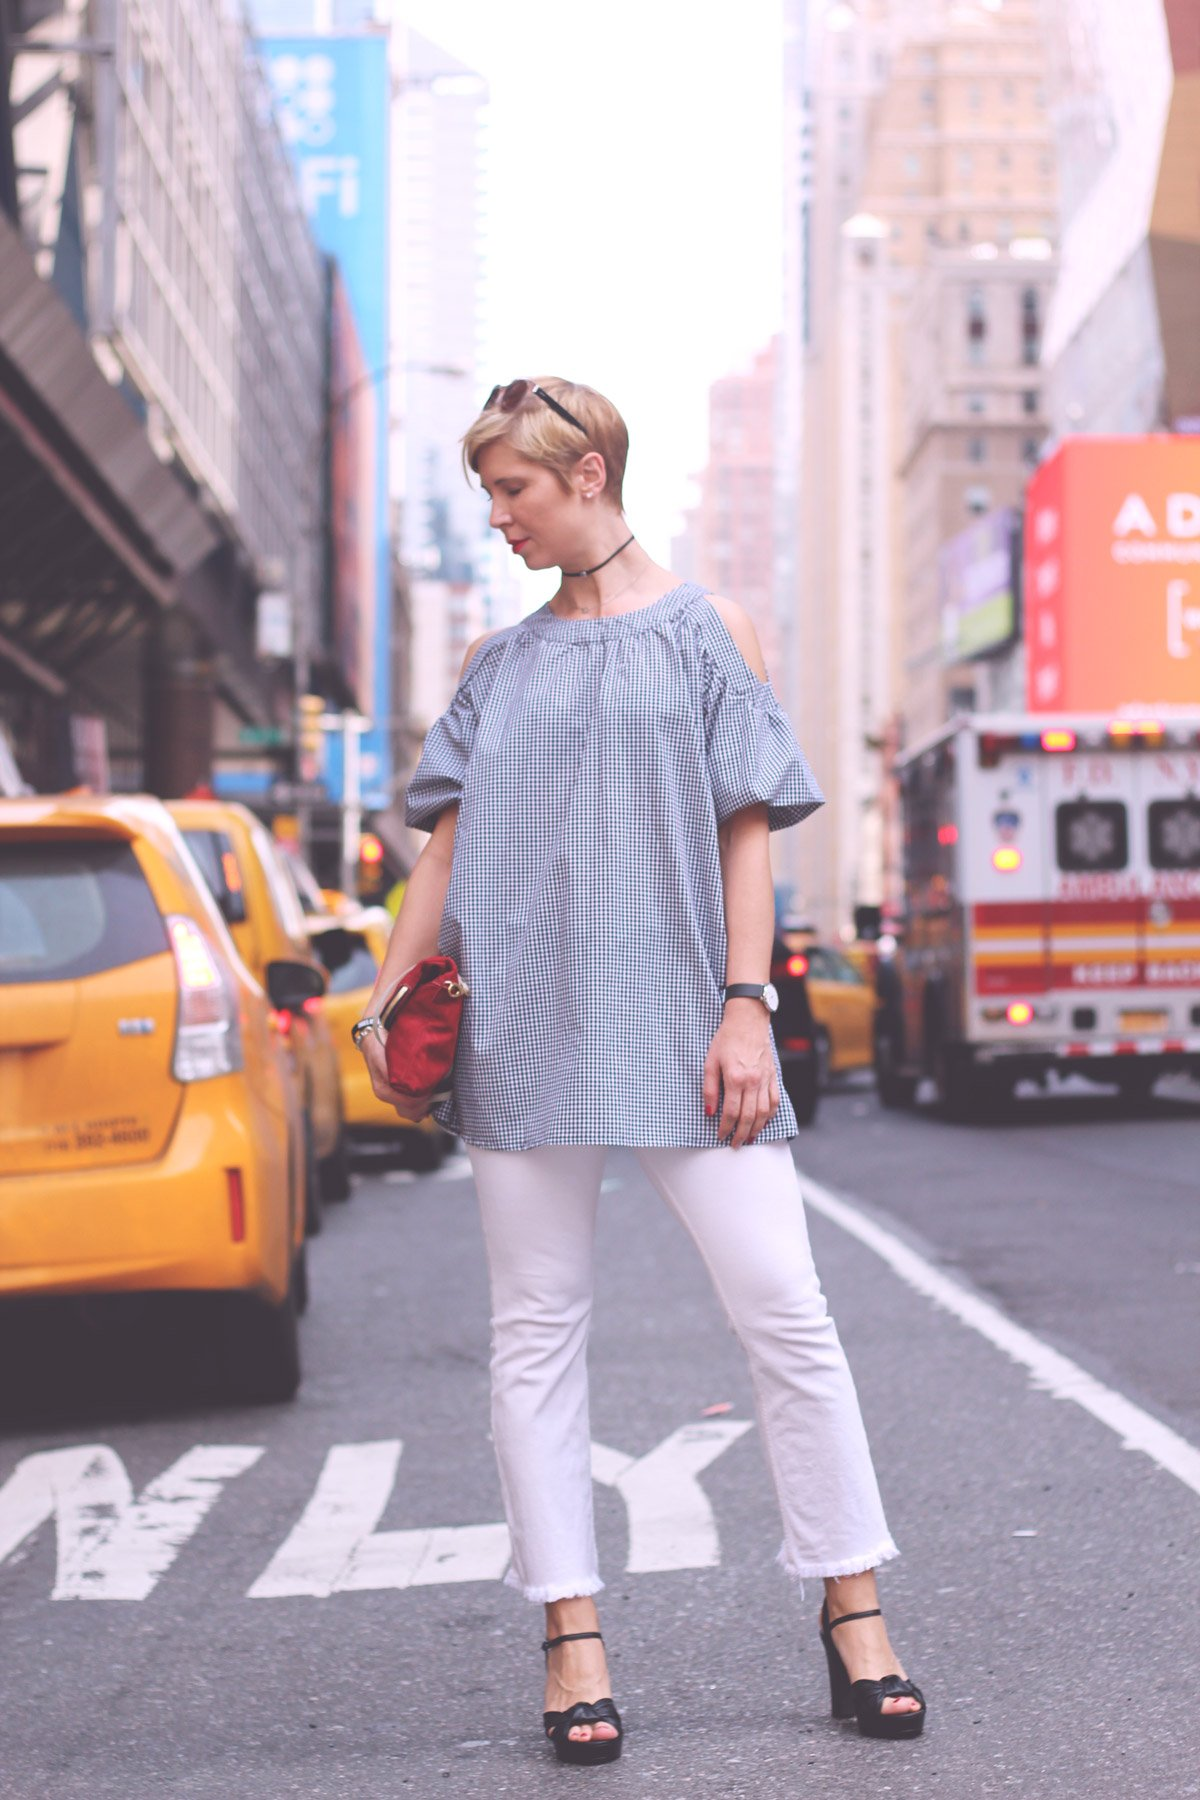 New Yorker Streetstyle, Vichy karo, Cut out, Schulterfrei, weiße Hose, Port Authority Station, Manhatten, yellow cab, nyc taxis